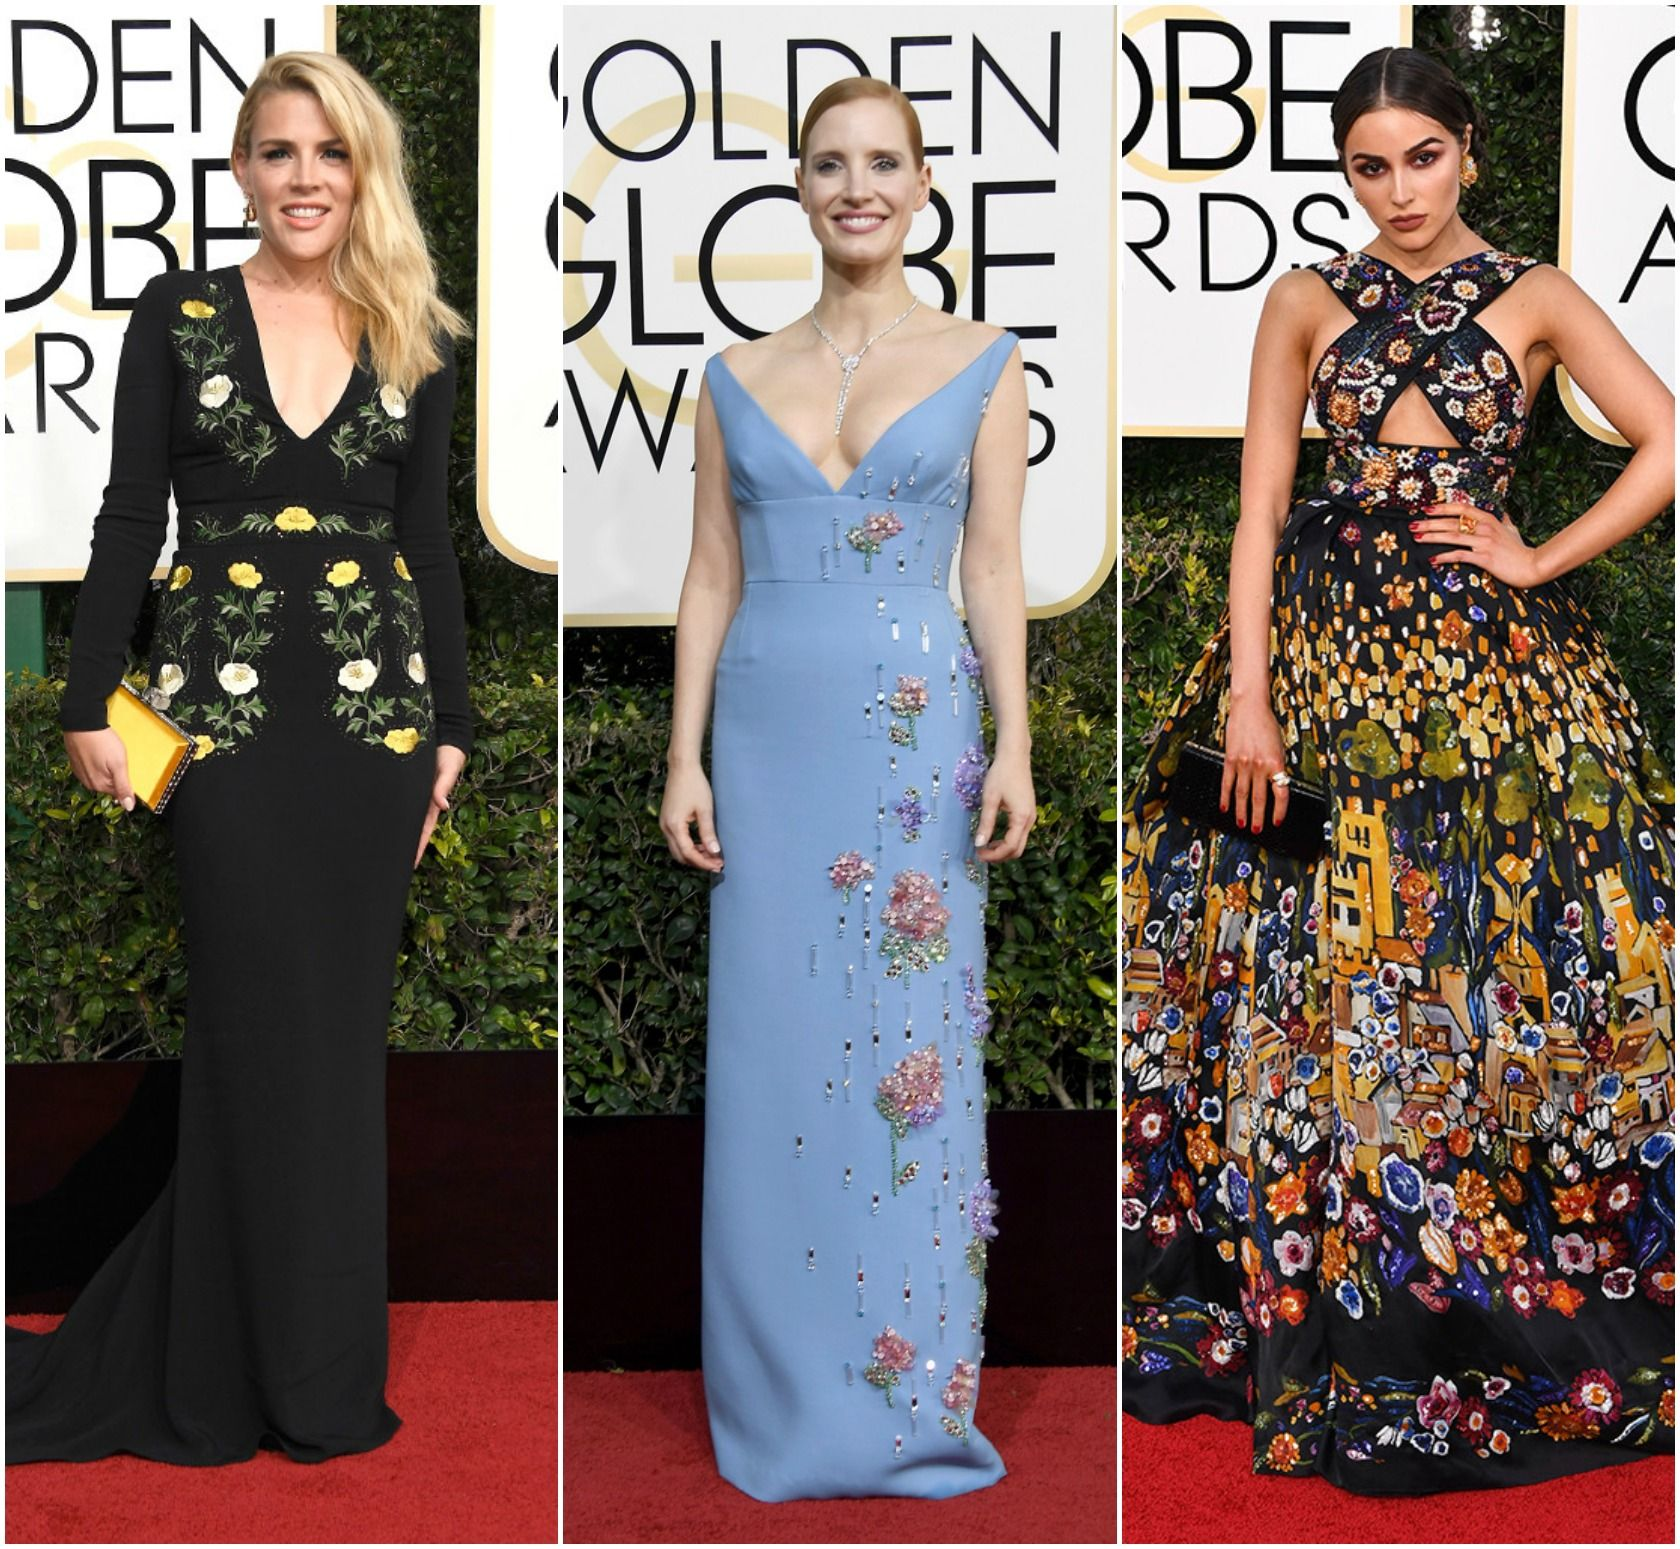 Five Wearable Trends From the Golden Globes 2017 Red Carpet